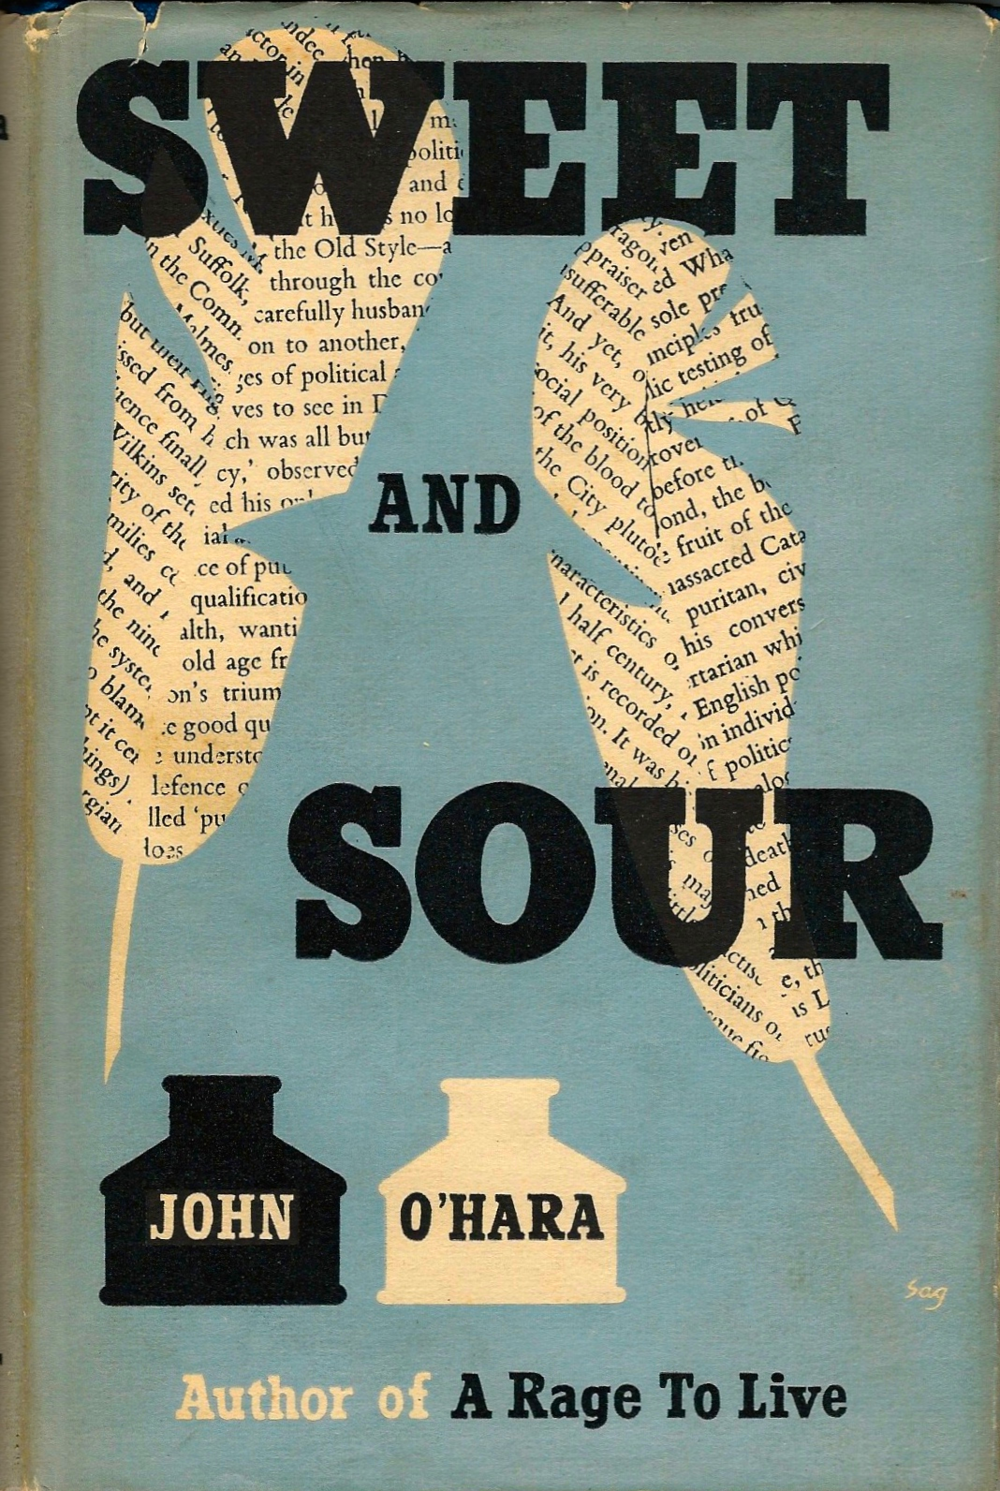 Sweet and Sour, by John O'Hara First UK edition 1955